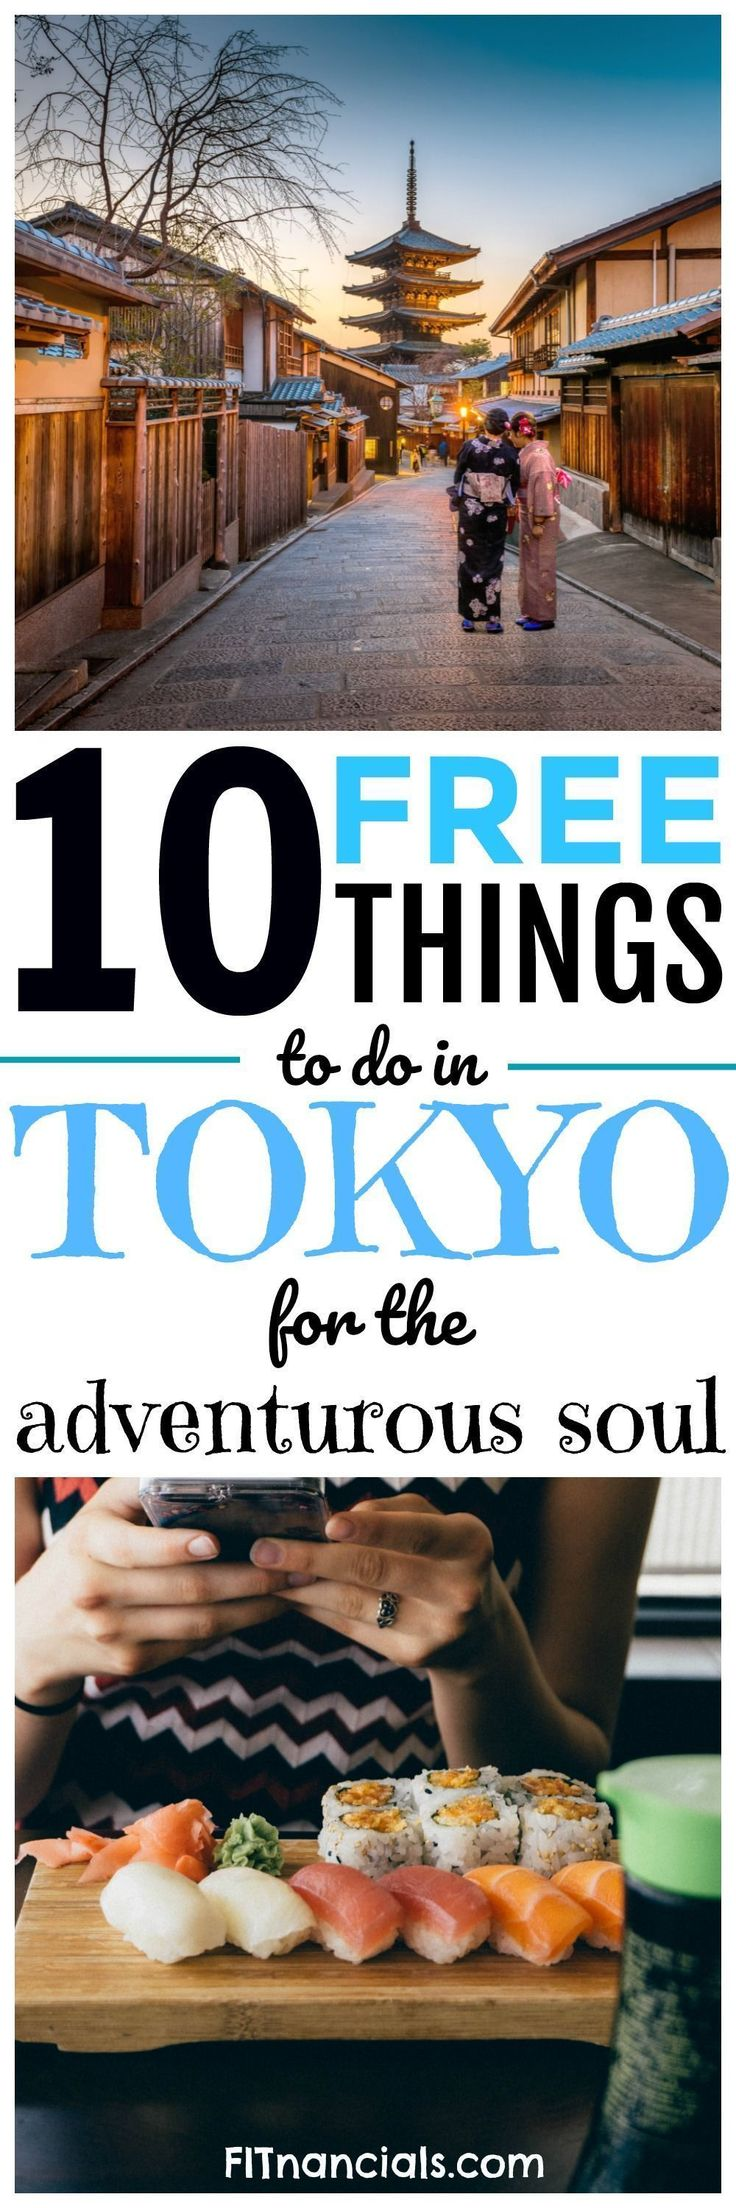 Tokyo On A Budget – 10 Free Things To Do In Toky…